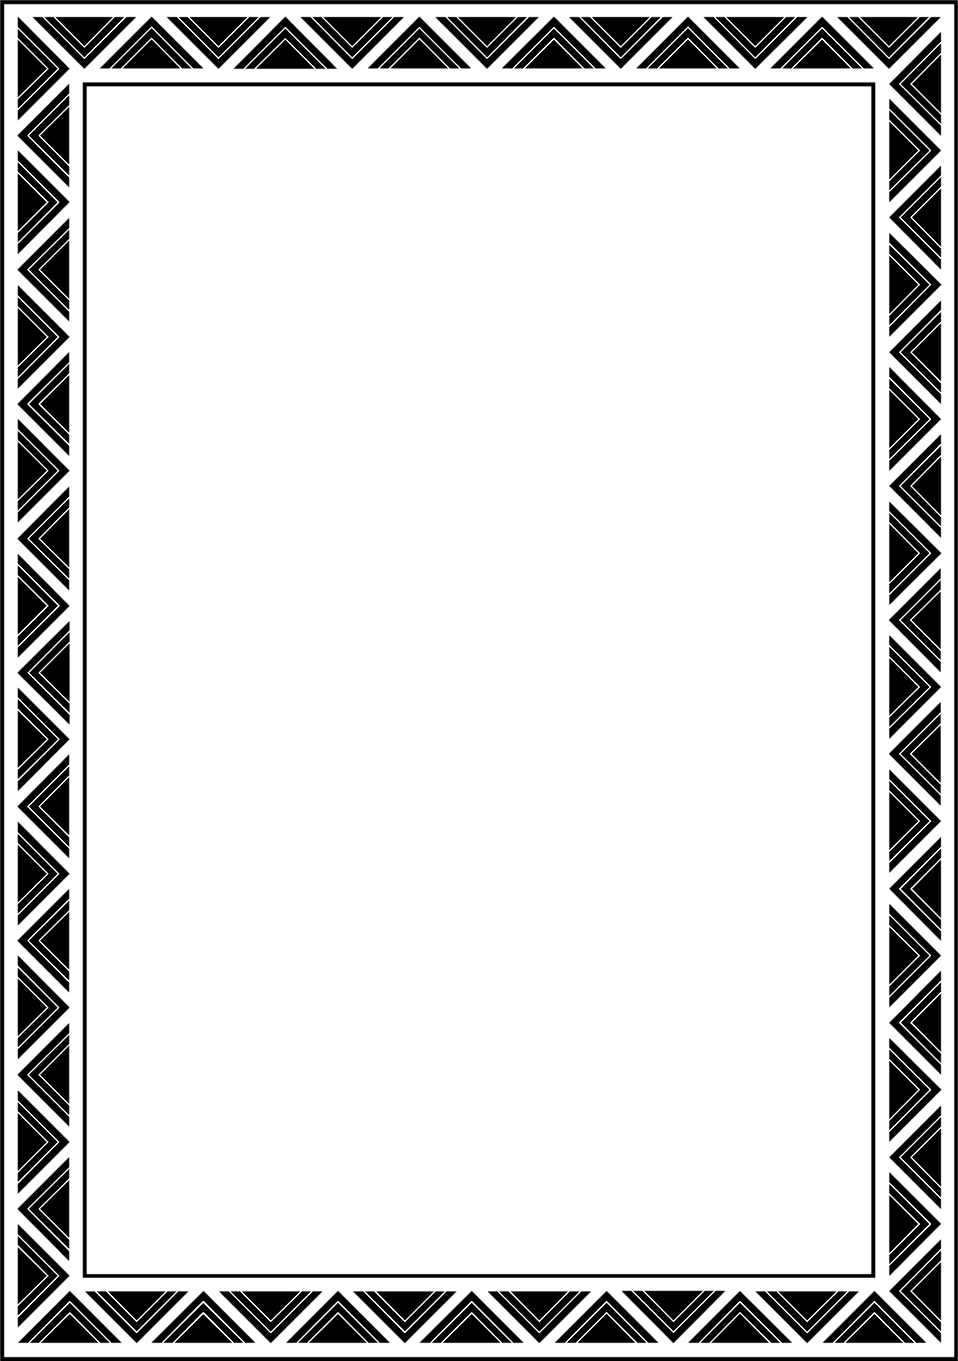 Illustration of a blank frame border free stock photo